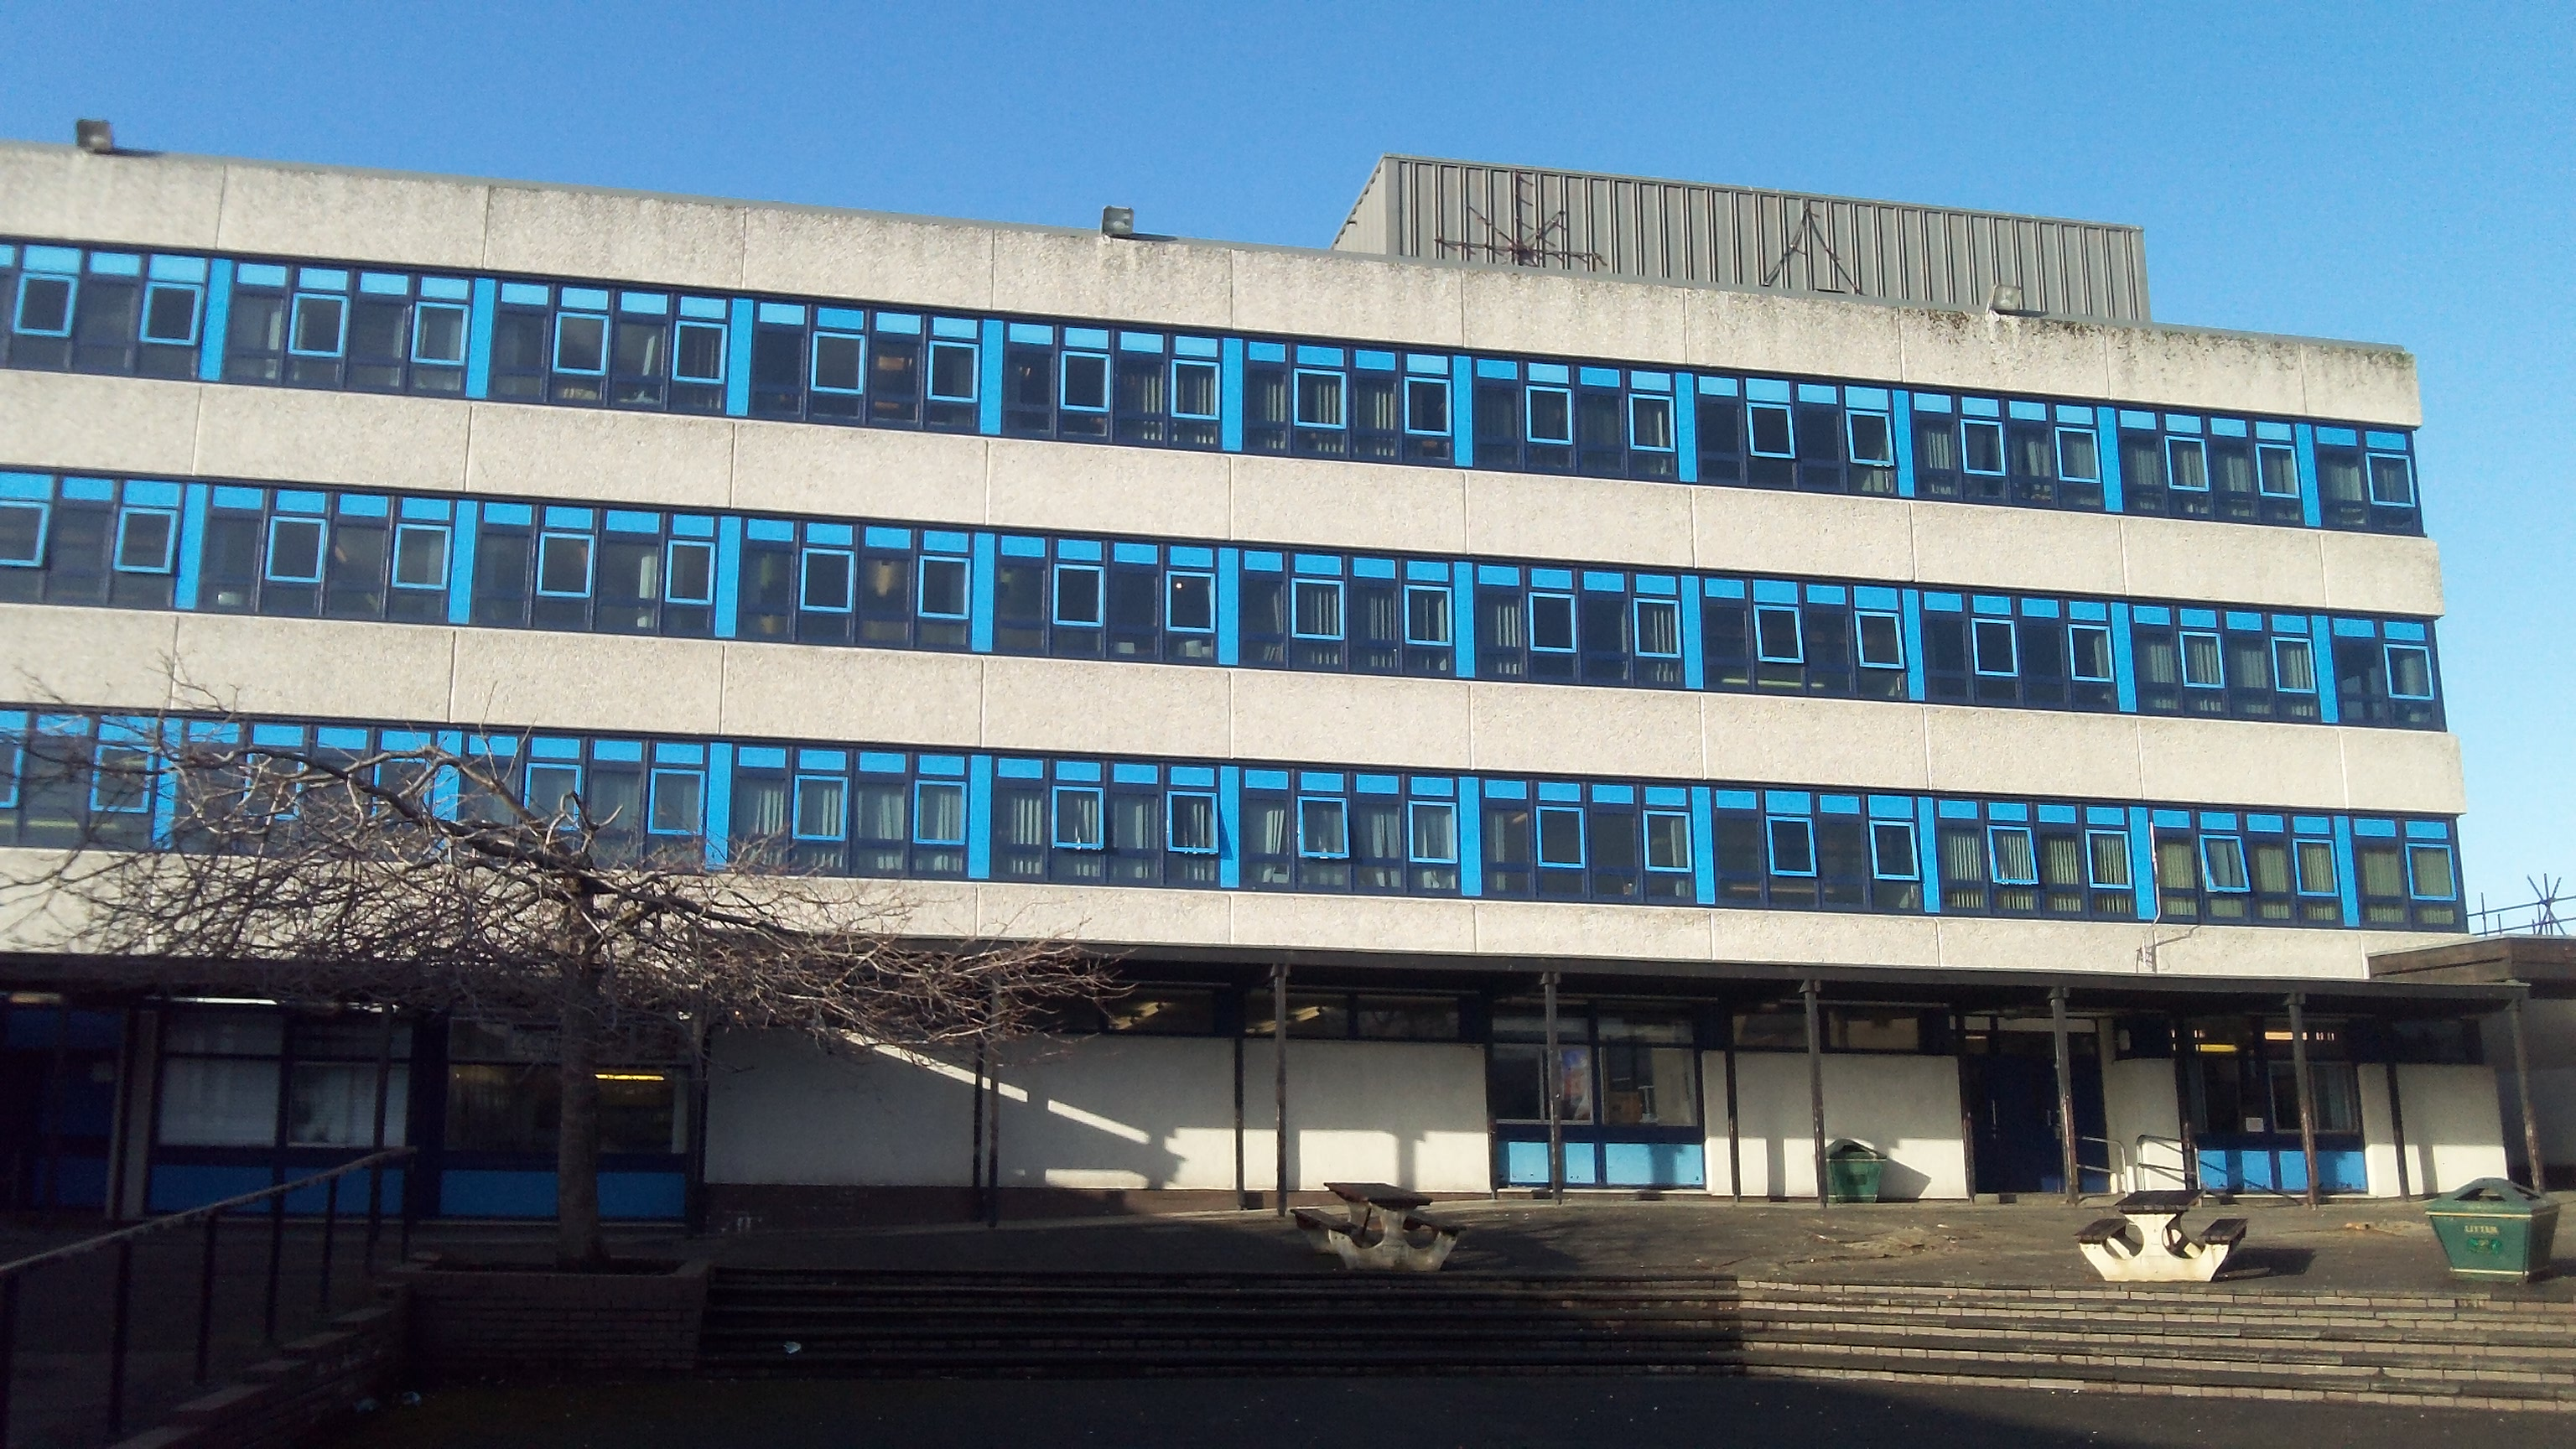 WHEC Wester Hailes Education Centre